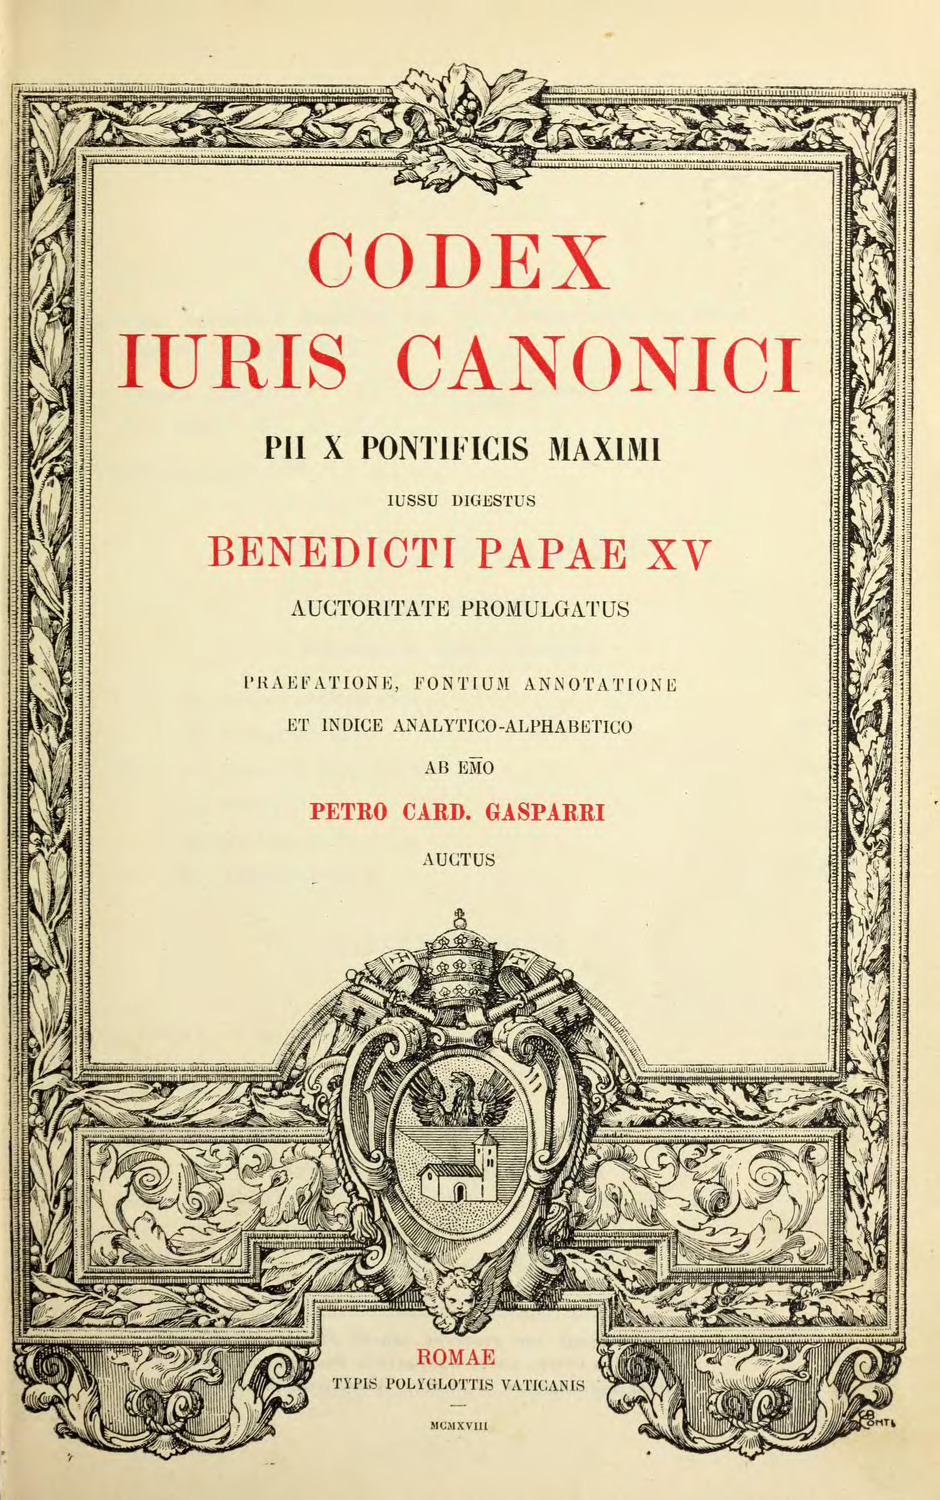 Ornately decorated page from 1917 Codex Iuris Canonici (1918 ed.)